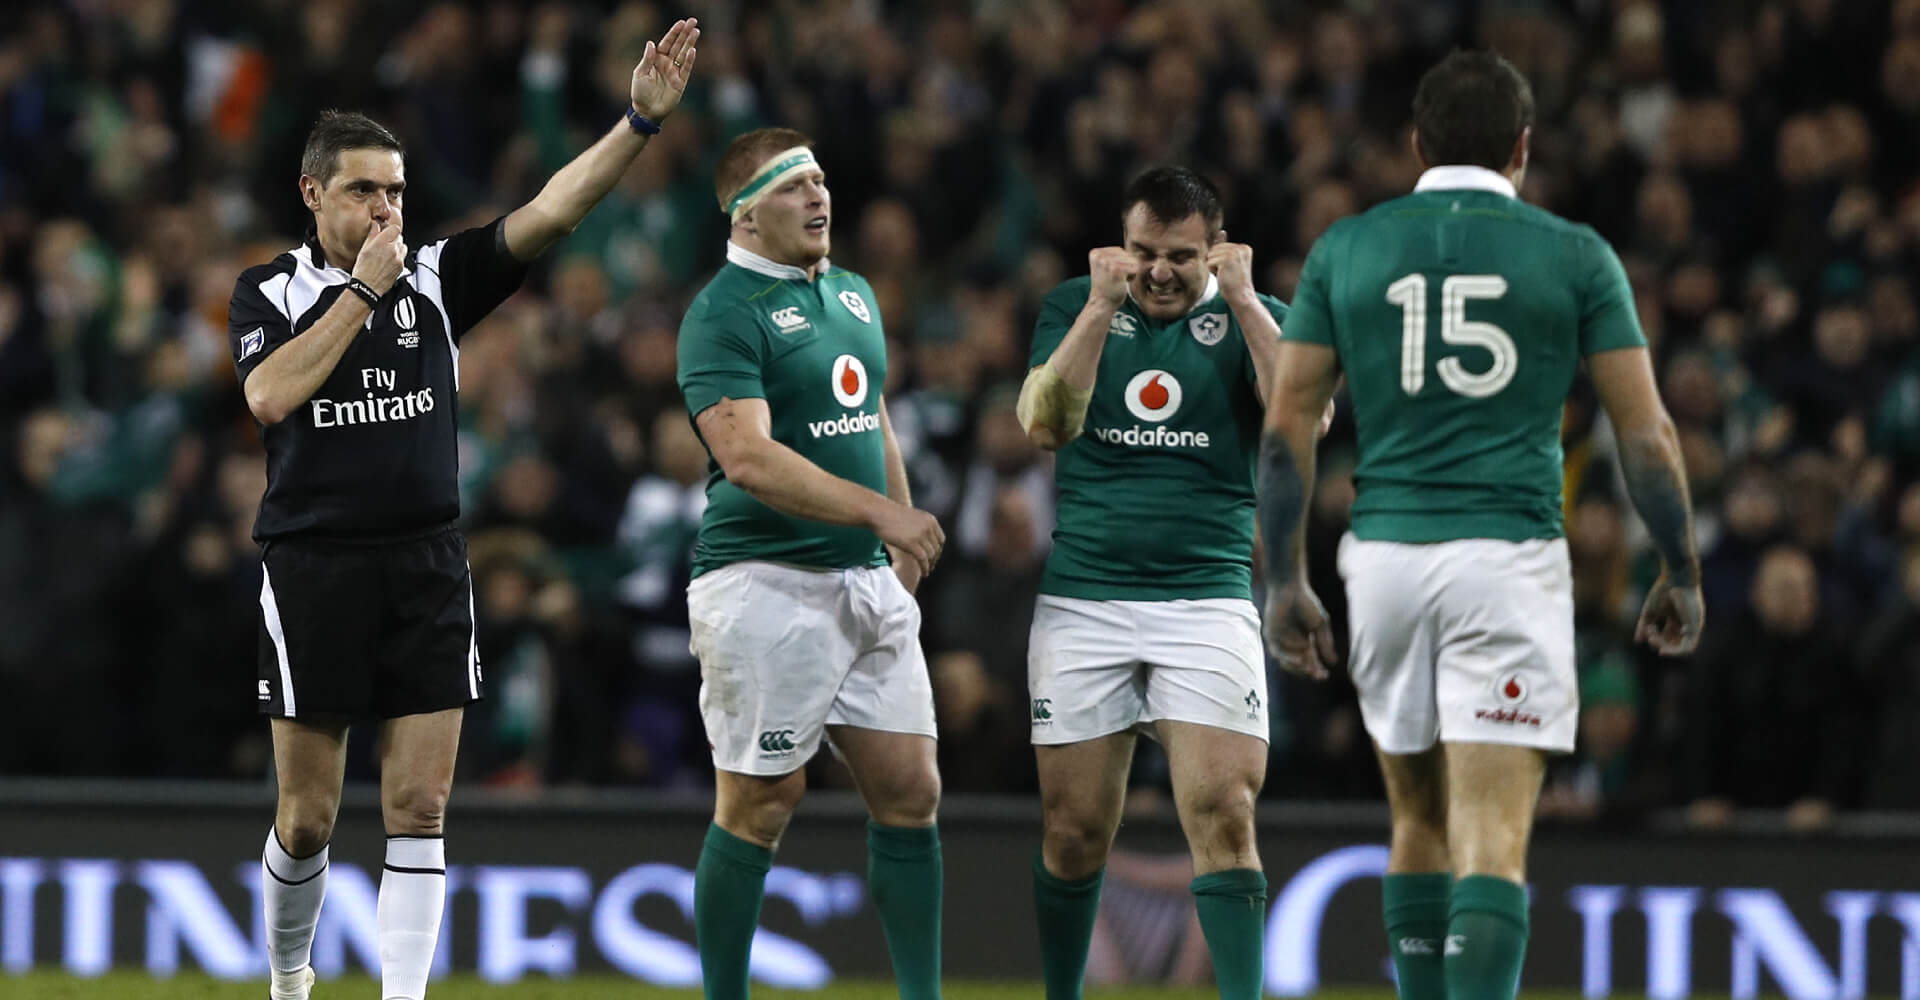 Ireland rbs 6 nations